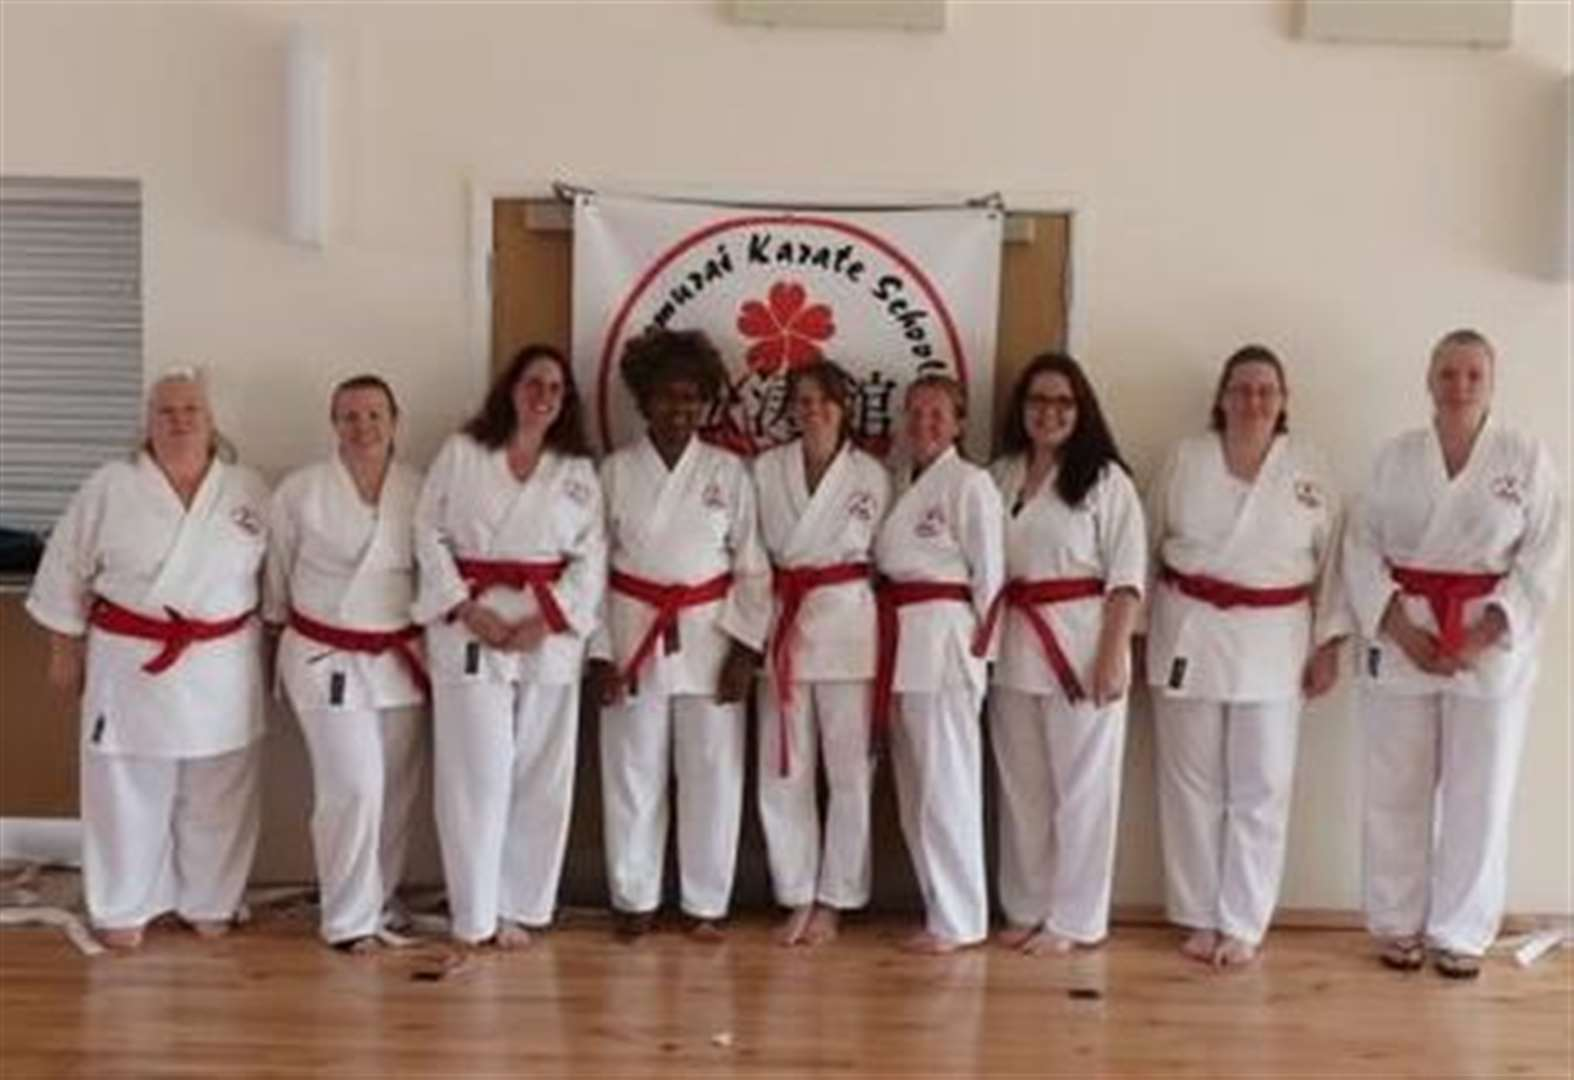 Karate school has biggest number of adults grading first-time